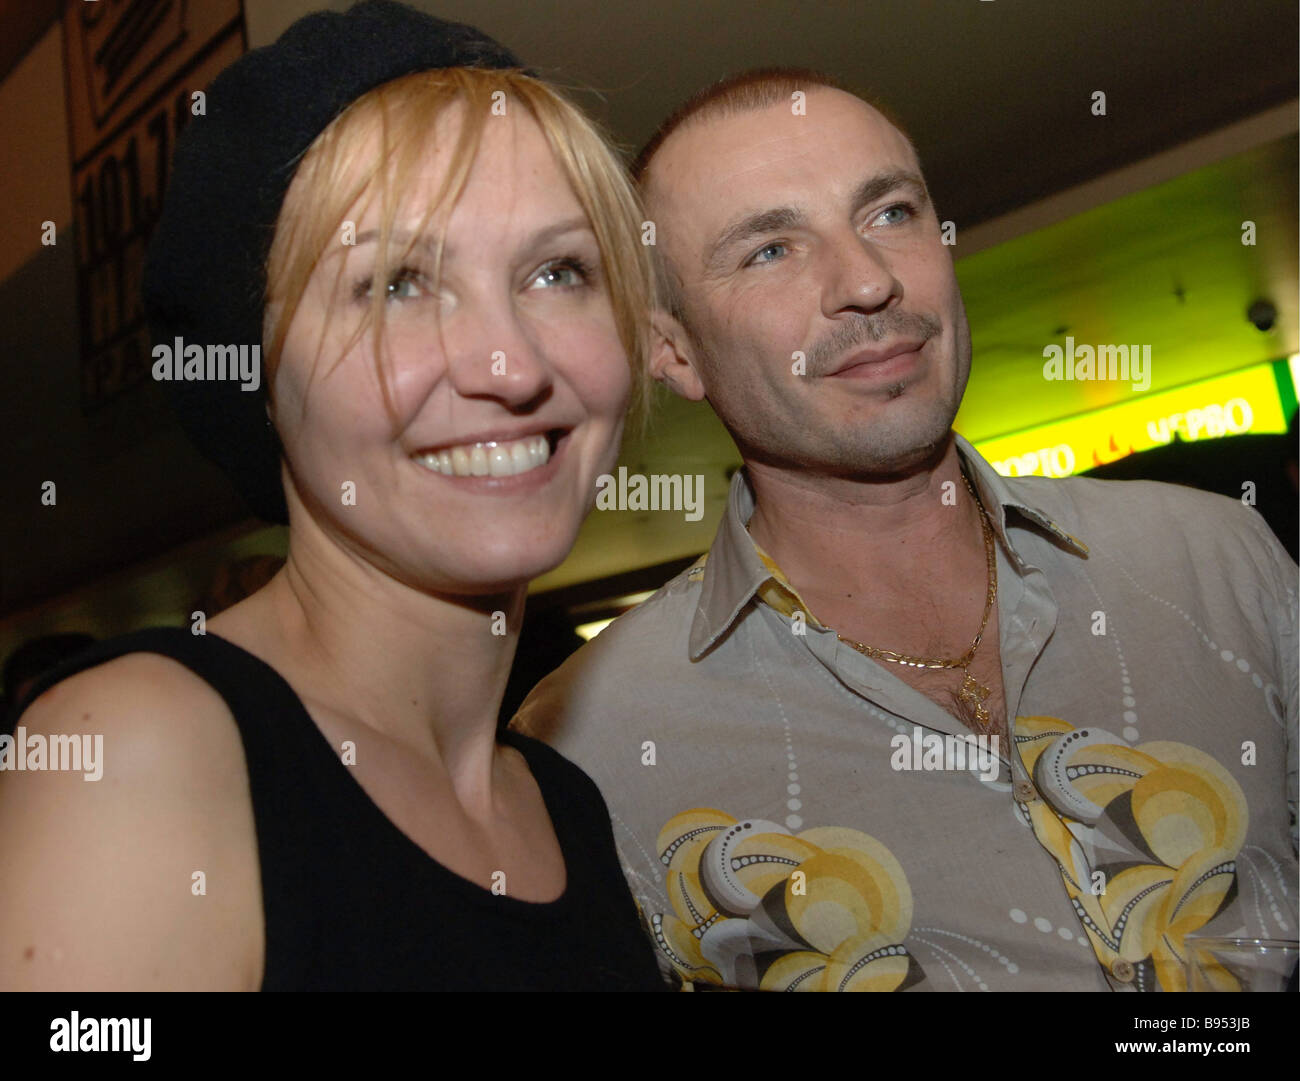 Russian film star Ingeborga Dapkunaite and figure skating trainer Alexander Zhulin at the Oktyabr cinema Moscow - Stock Image